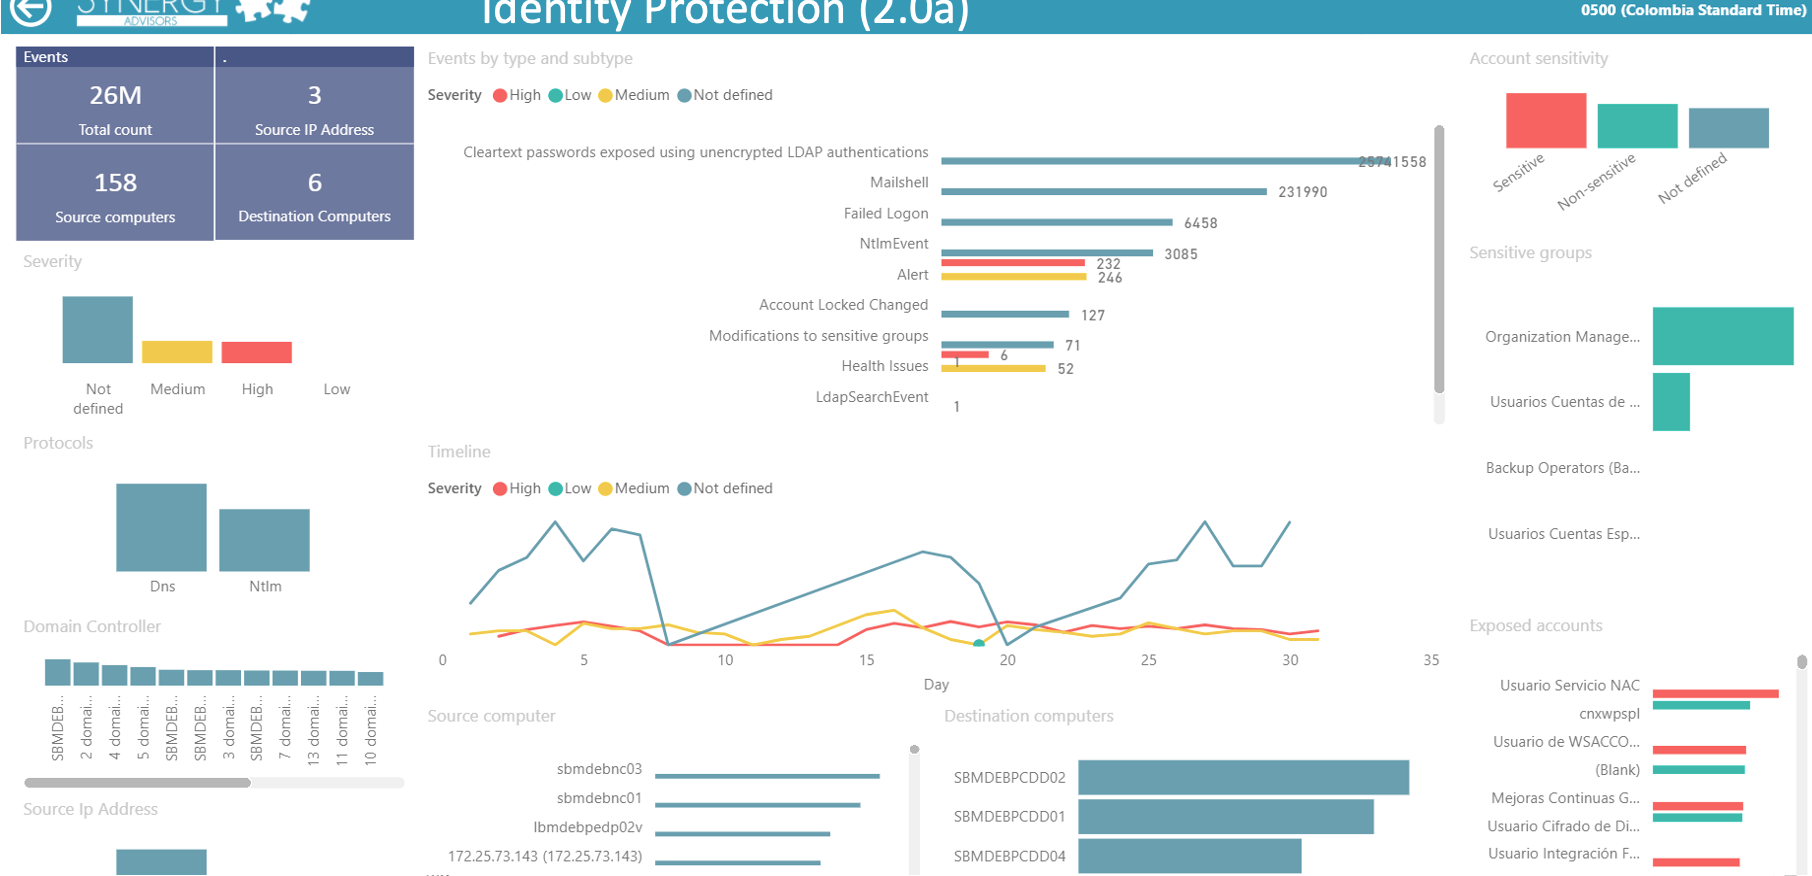 Identity Events by accounts